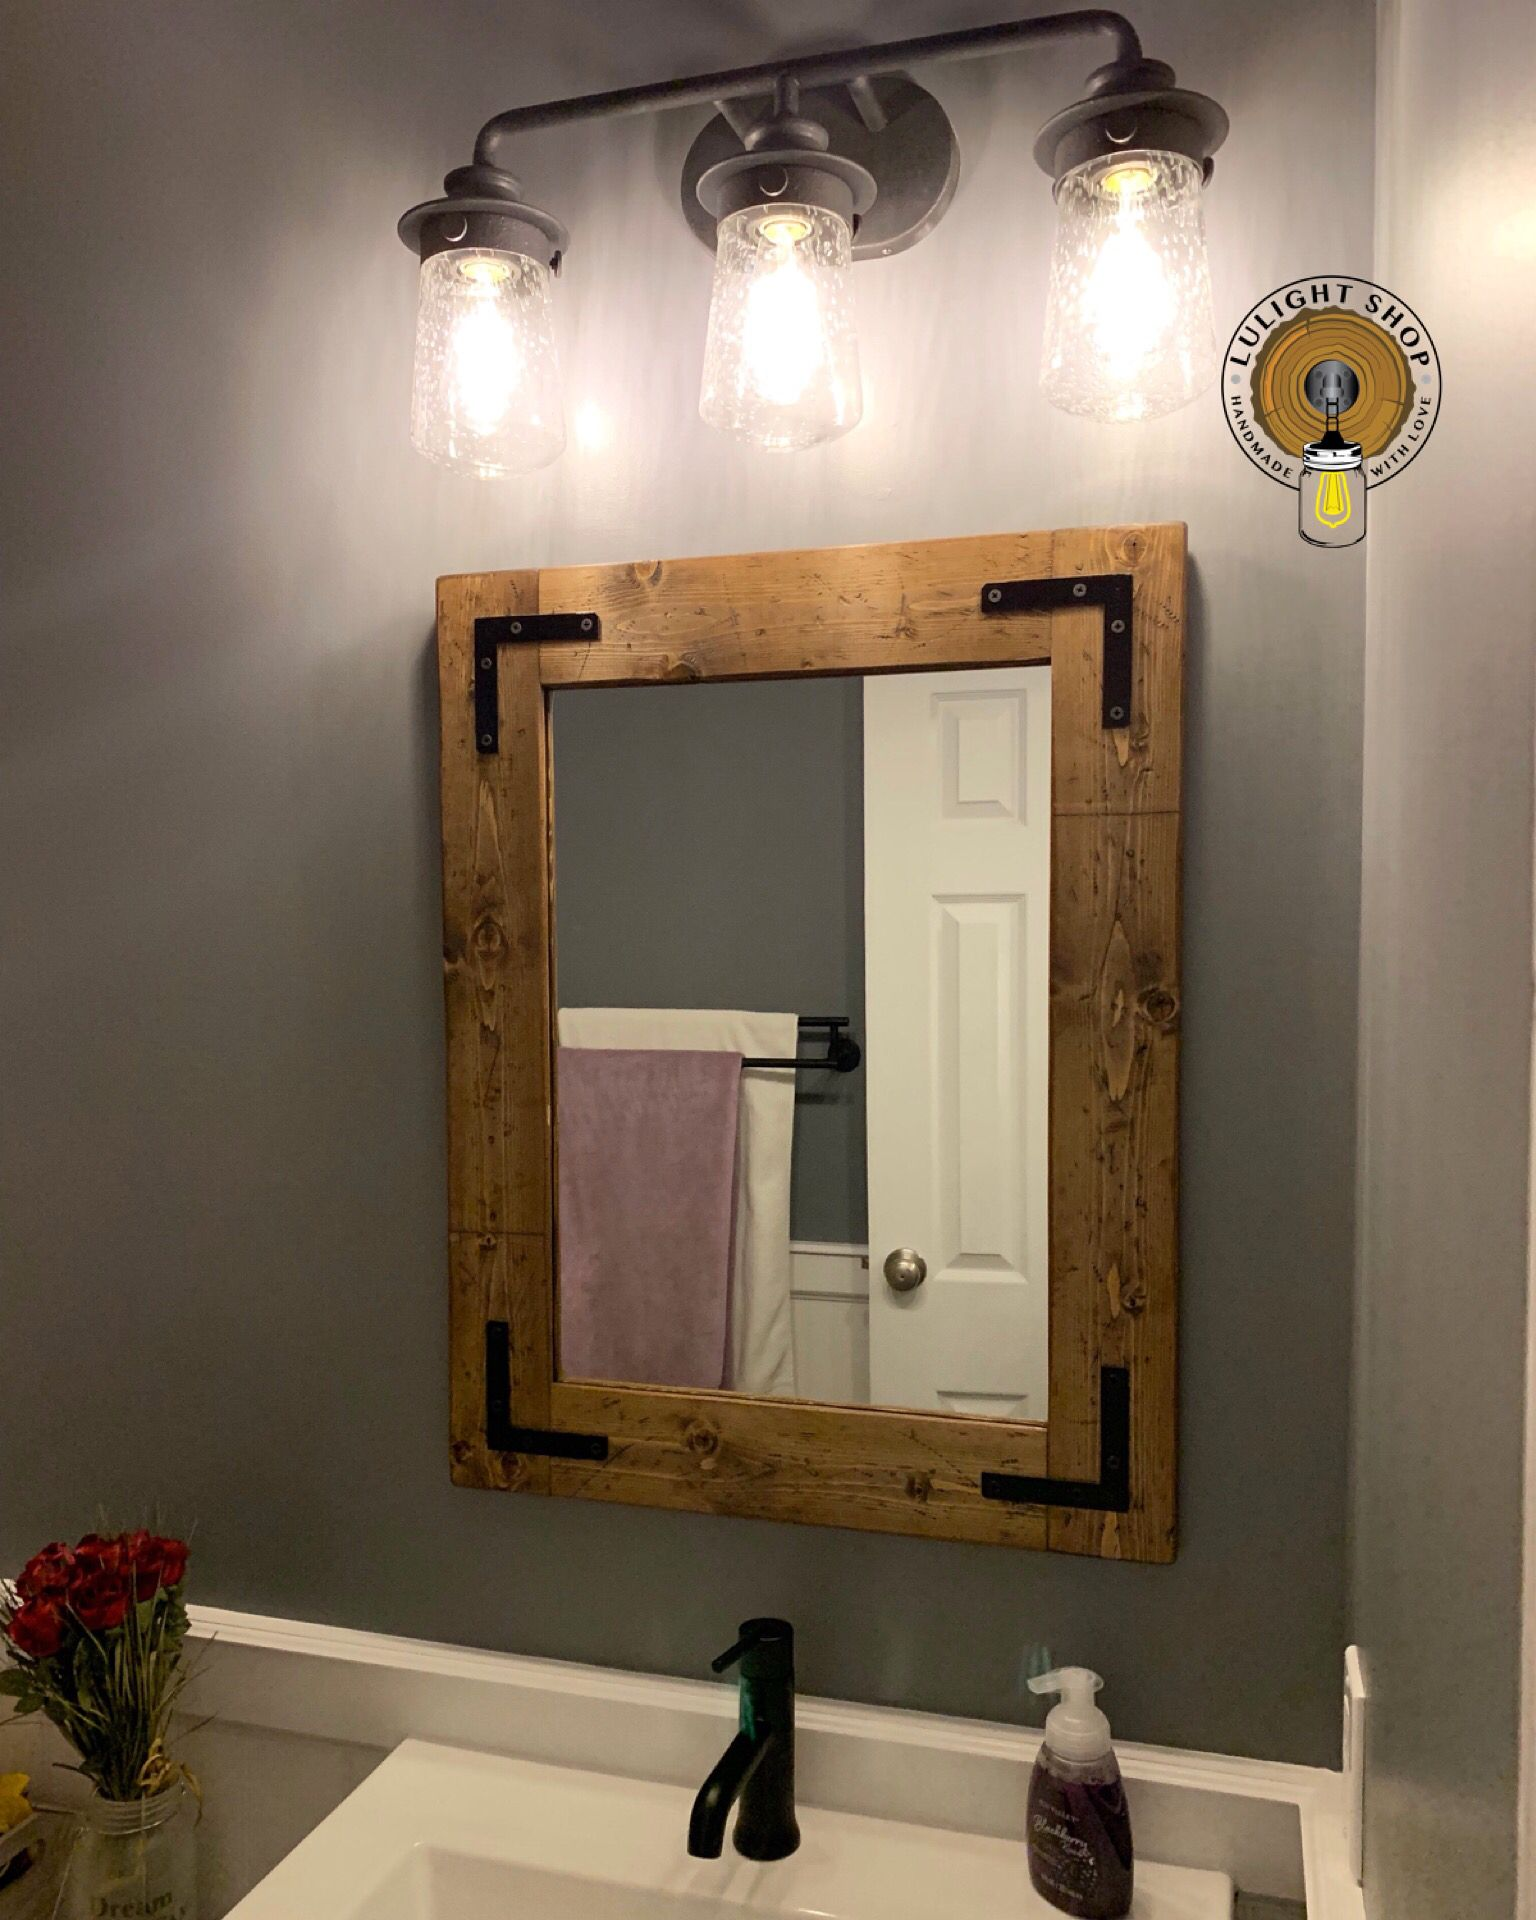 Handmade Rustic Bathroom Mirror By Lulight Shop Rustic Bathroom Light Fixtures Trendy Bathroom Tiles Amazing Bathrooms